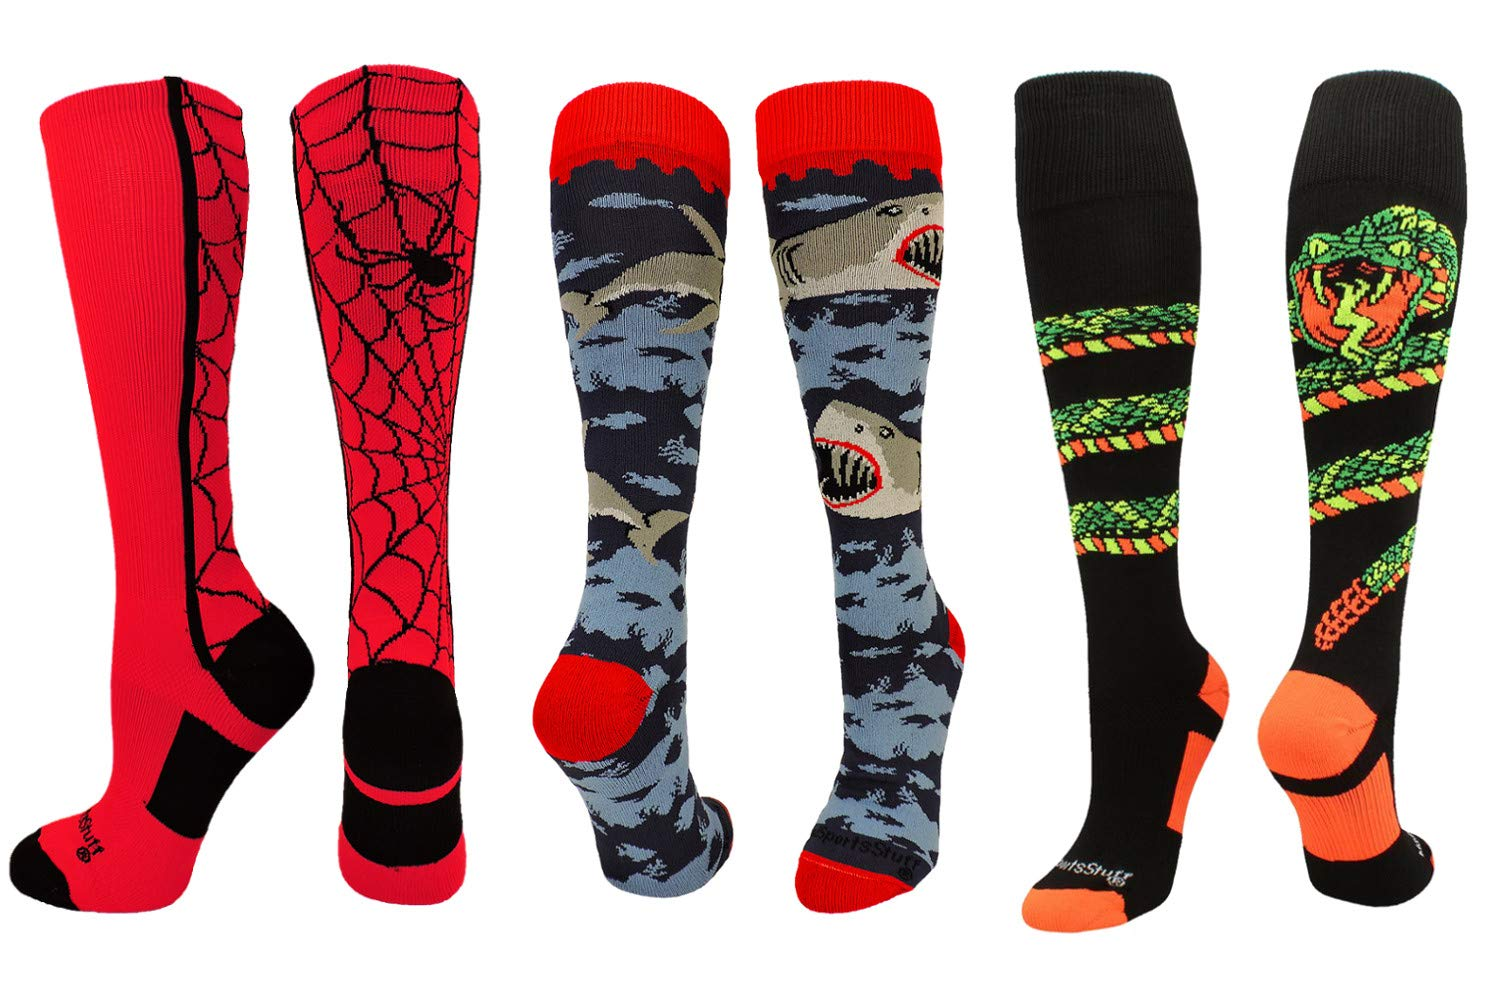 MadSportsStuff Shark Socks Spider Socks Snake Socks Combo Pack (3-Pack Multi, Small)